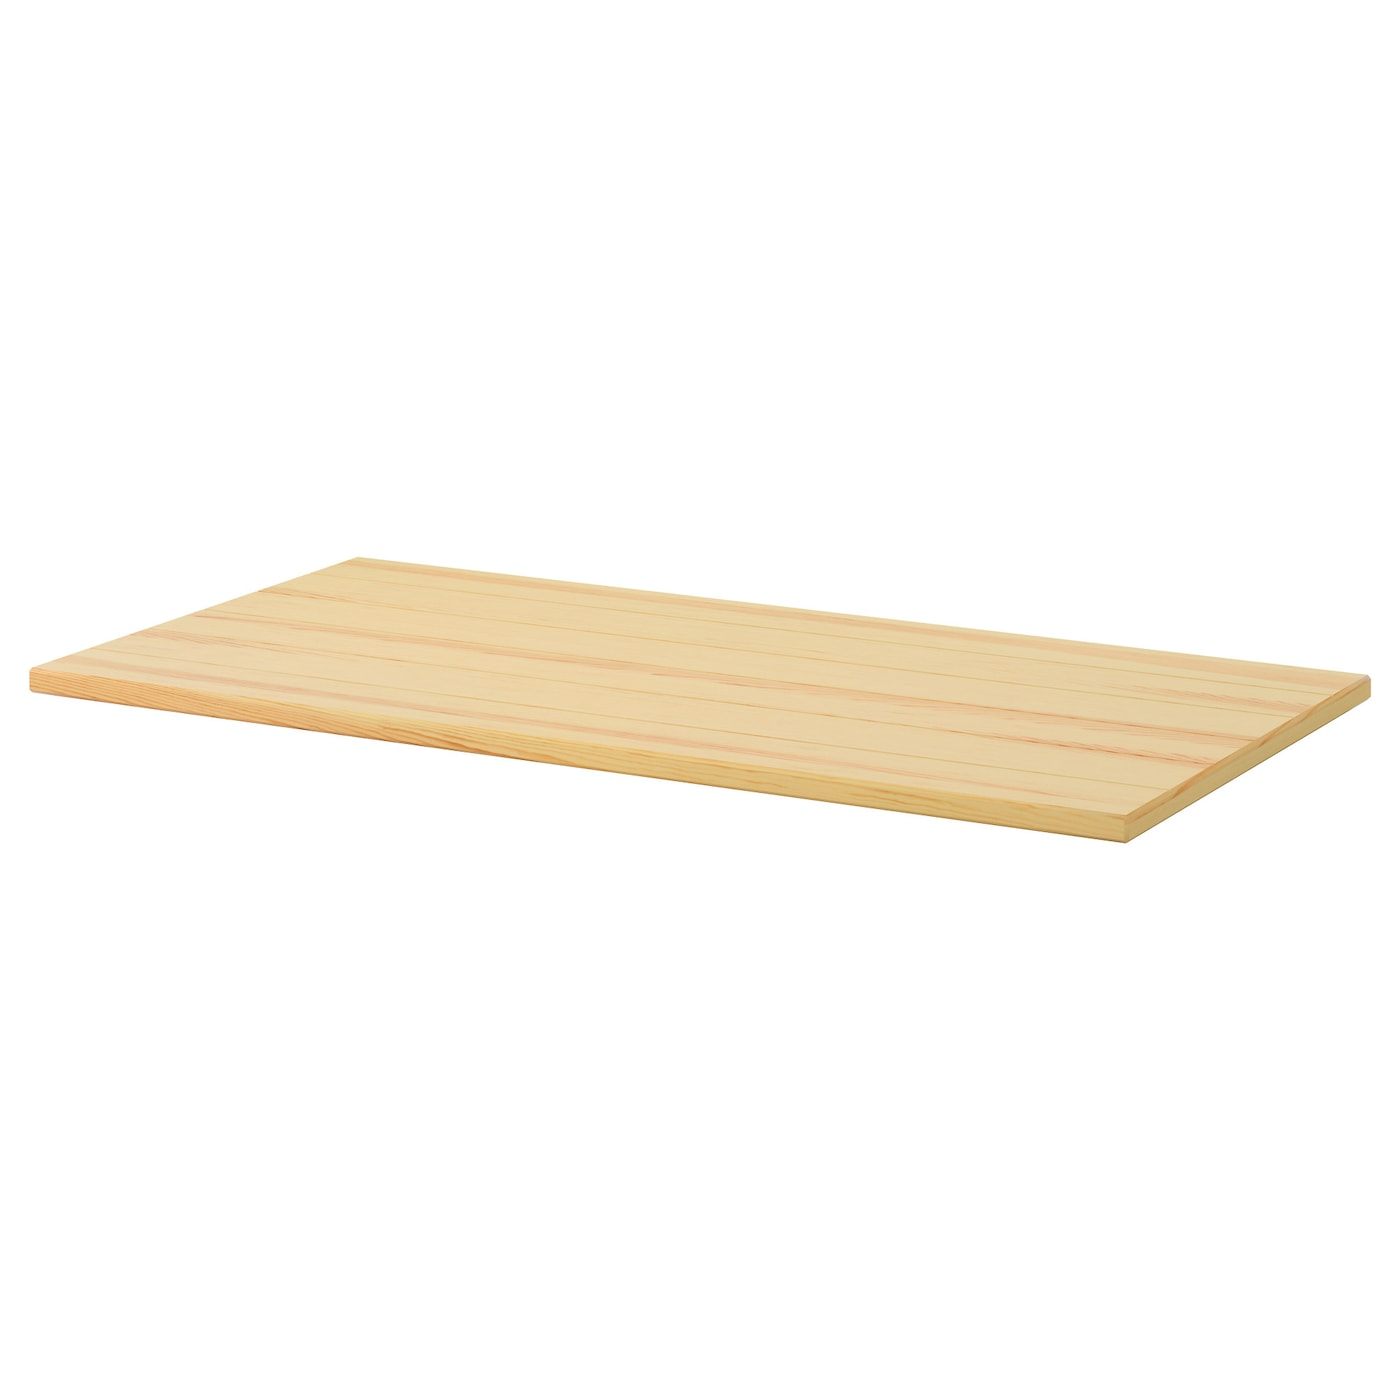 IKEA RYGGESTAD table top